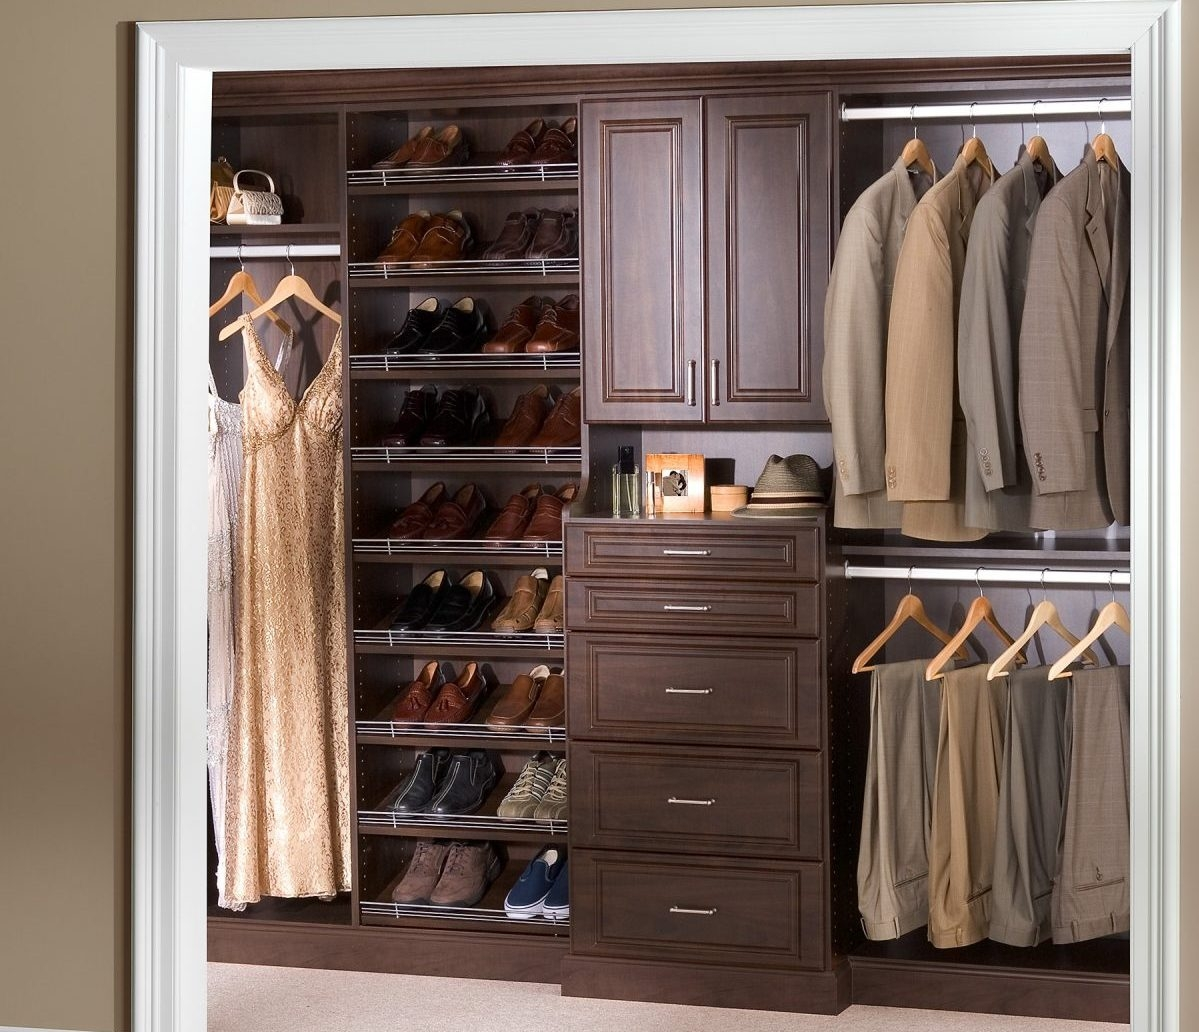 Top 30 Modern Bedroom Cupboard Storage Decoration Ideas Regarding Bedroom Wardrobe Storages (View 8 of 25)